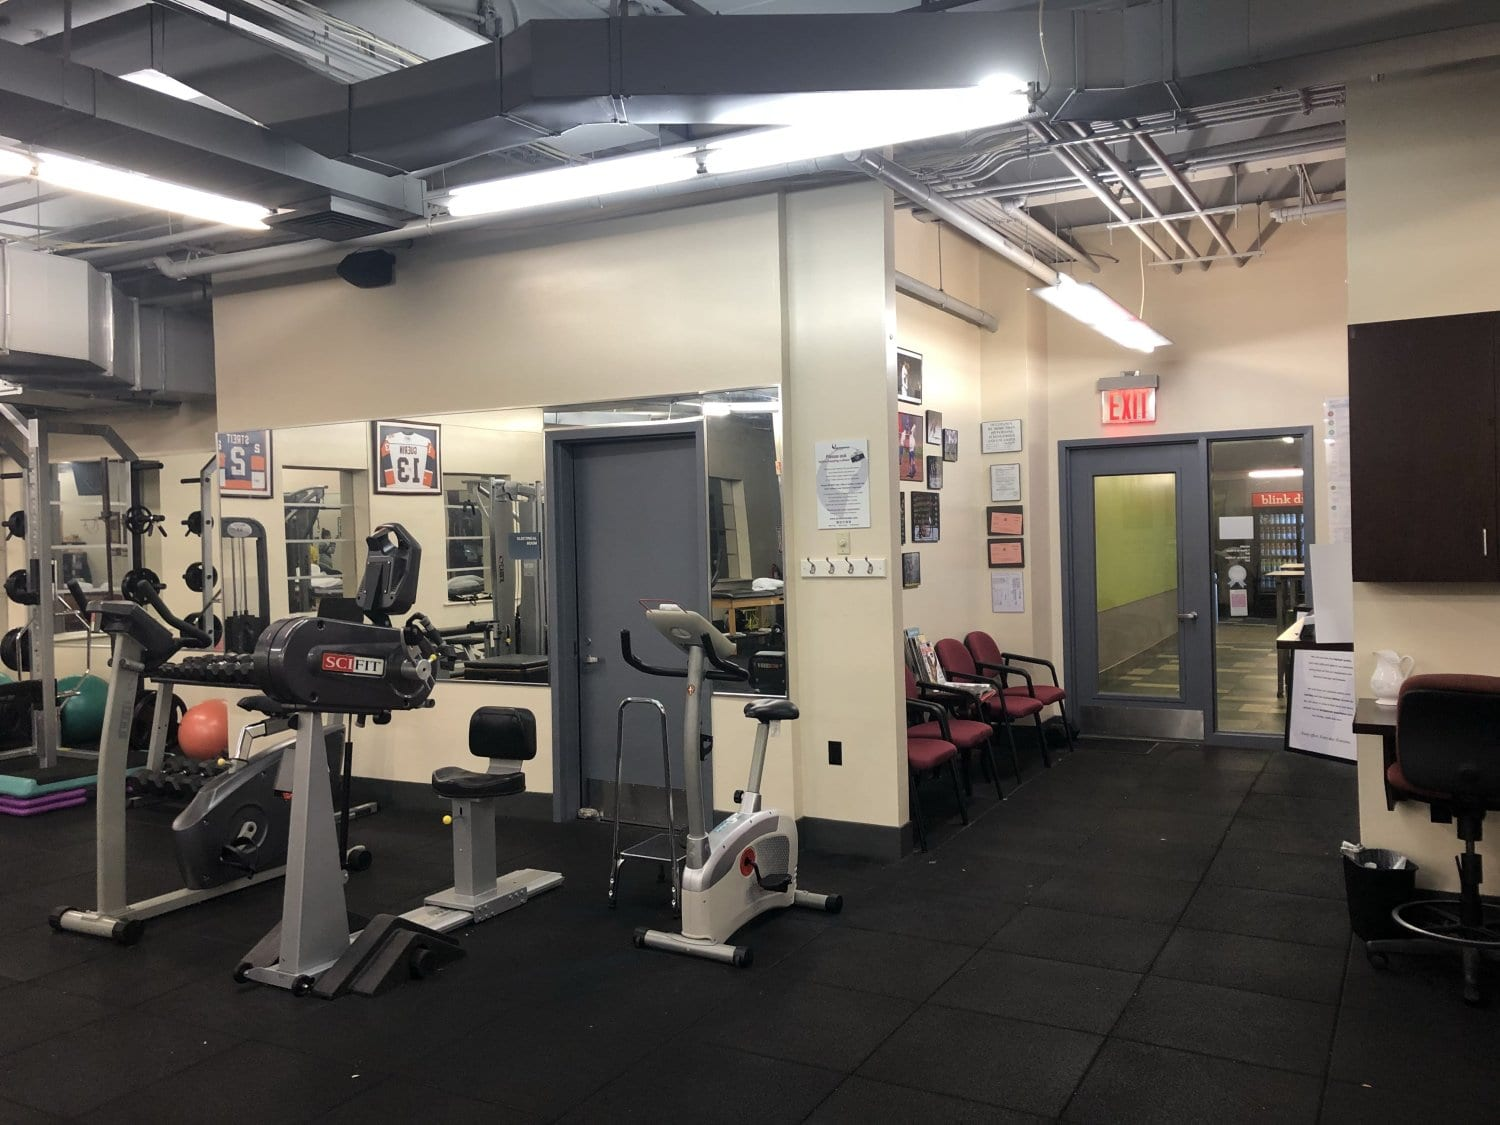 Here is an image of some of the machines in our training room in our physical therapy clinic in Melville, Long Island in Suffolk County, New York.